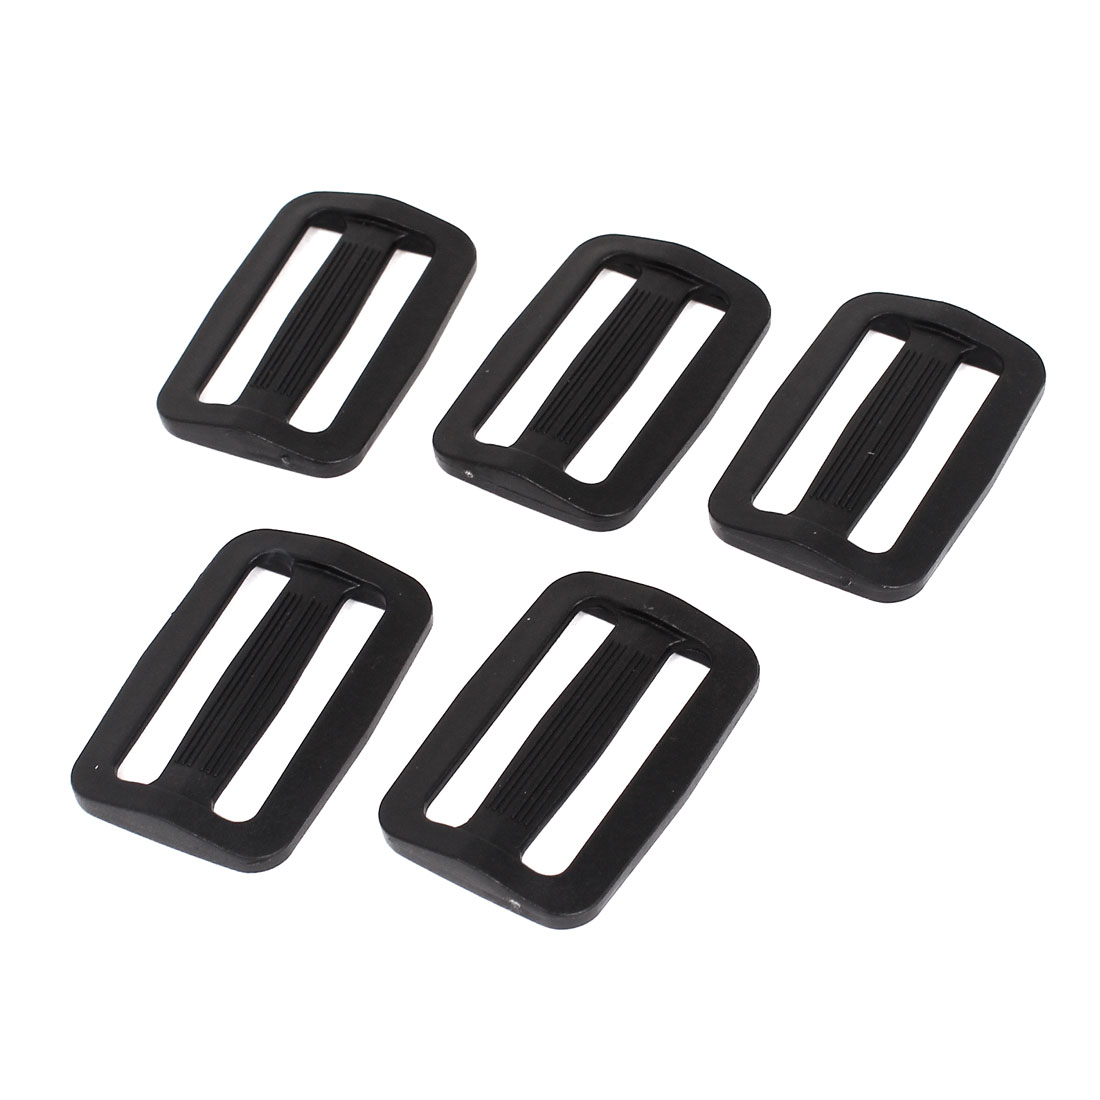 5 Pcs Black Hard Plastic Slide Rectangle Buckle Luggage Bag Replacement 3.8CM